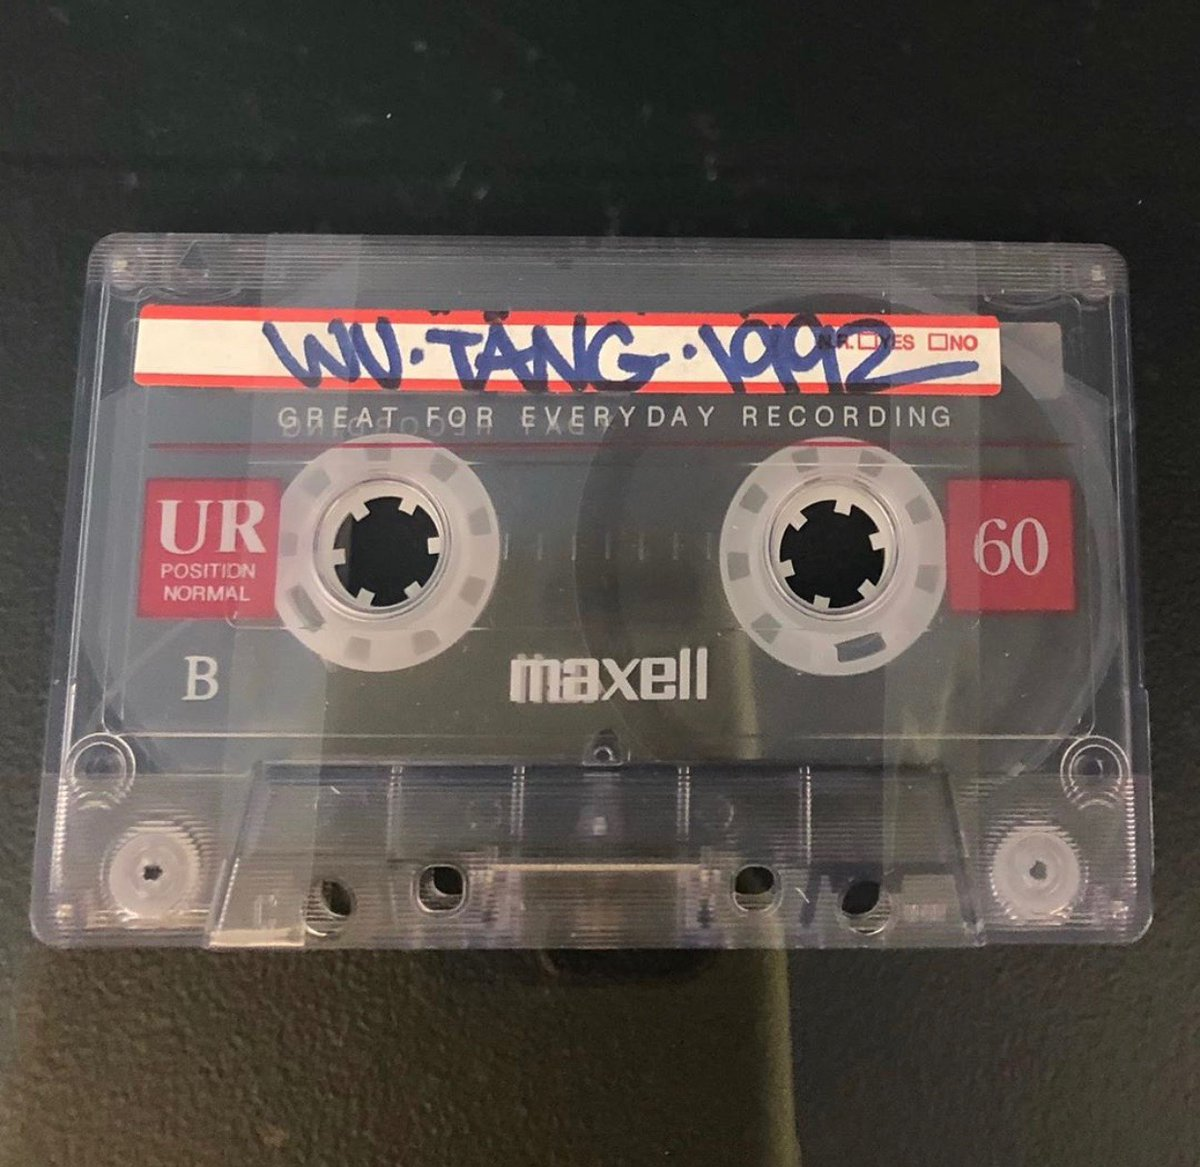 What do you know about this? #wutang #cassettetapes #hiphop #90shiphop #musicmondays